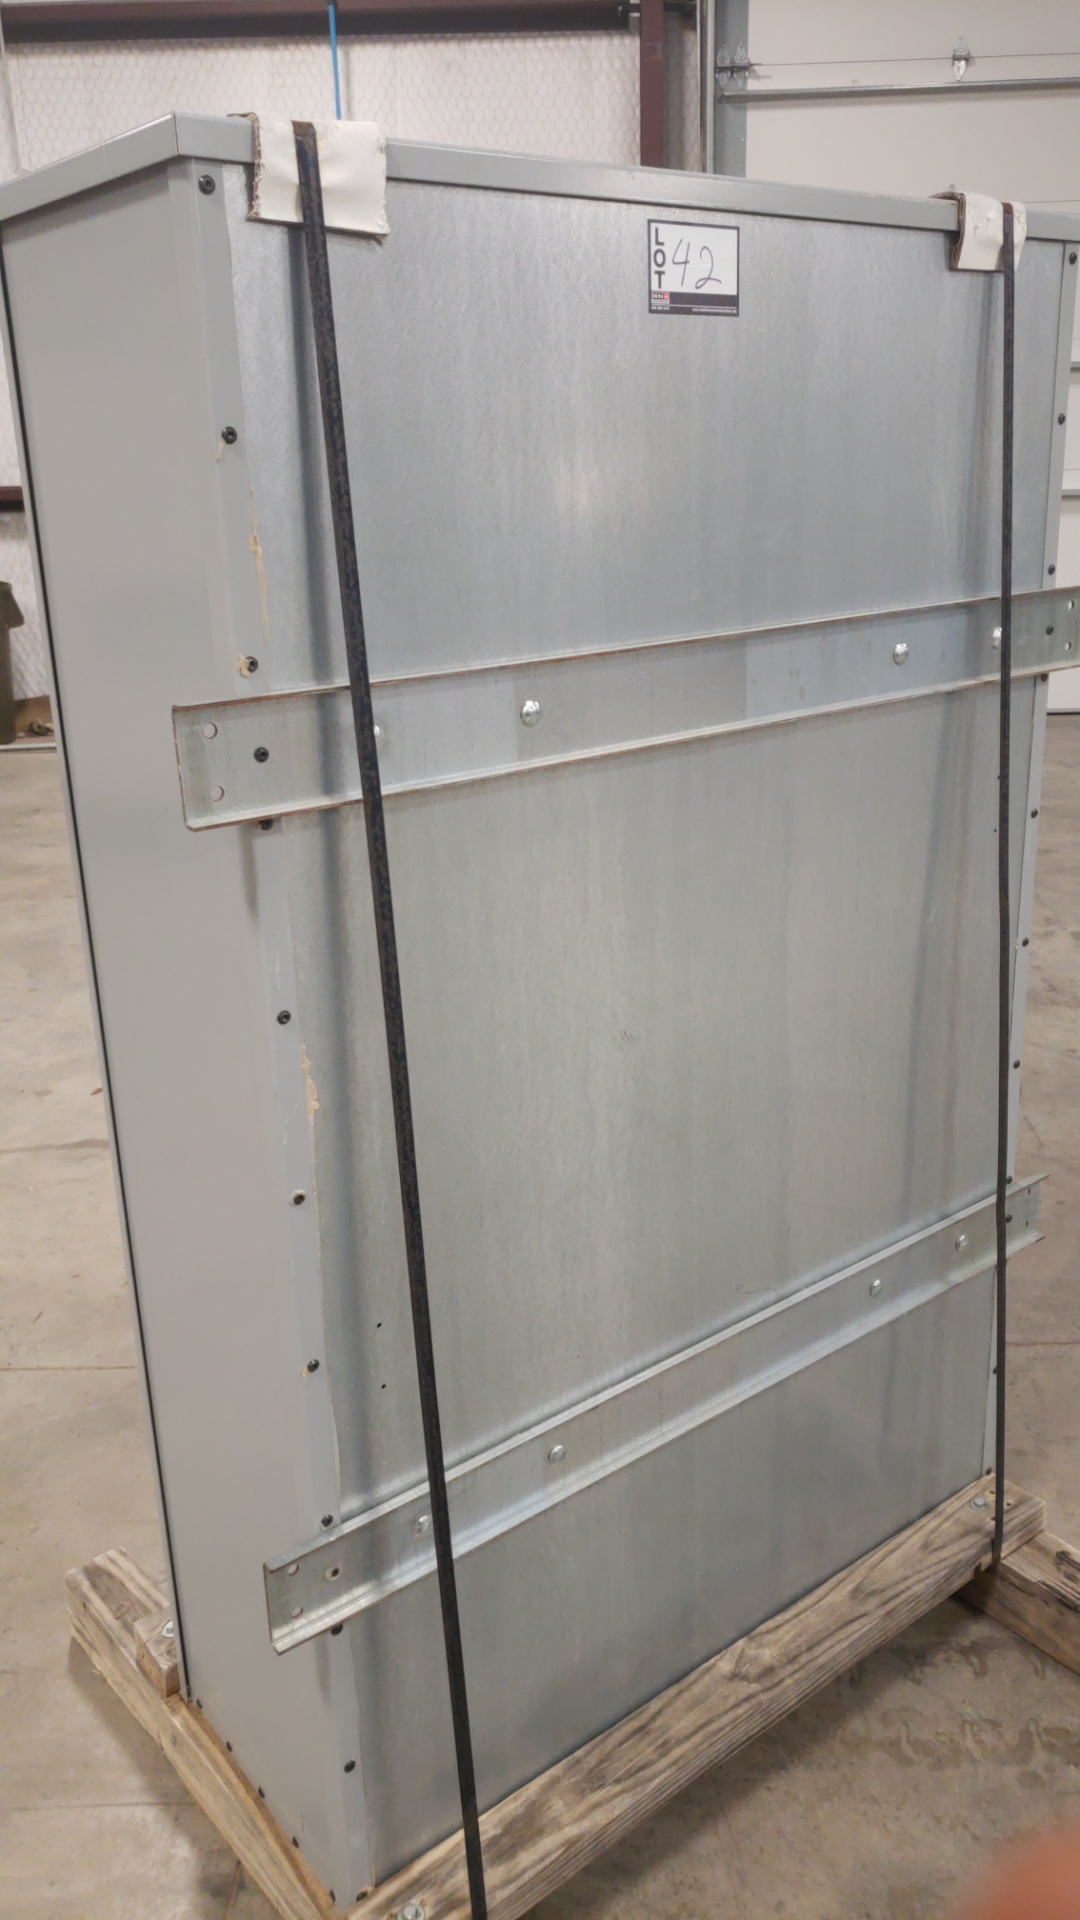 New Siemes 800 AMP 600 volt electric panel - Image 2 of 3